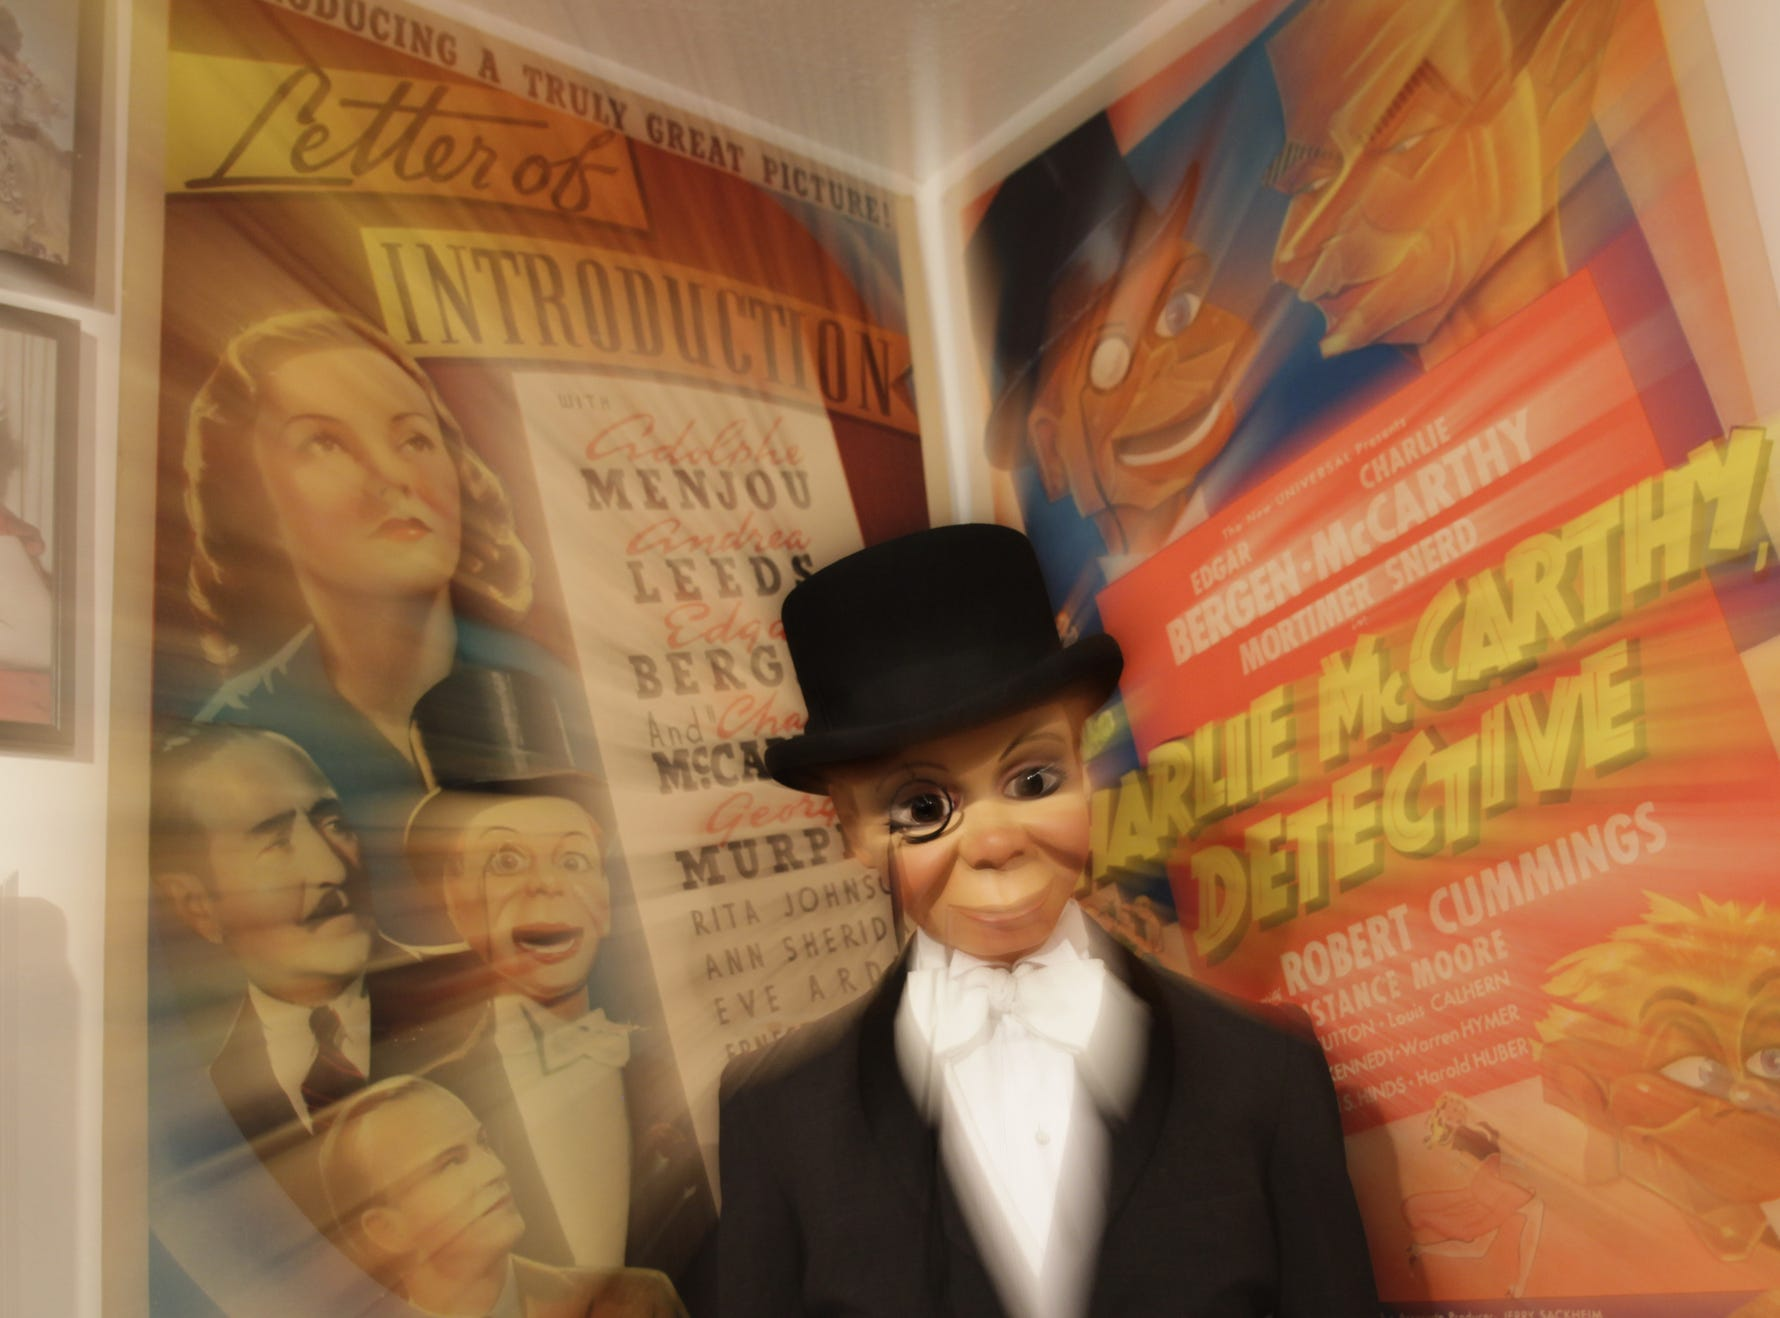 An area of the Vent Haven Museum pays homage to Edgar Bergen and Charlie McCarthy.